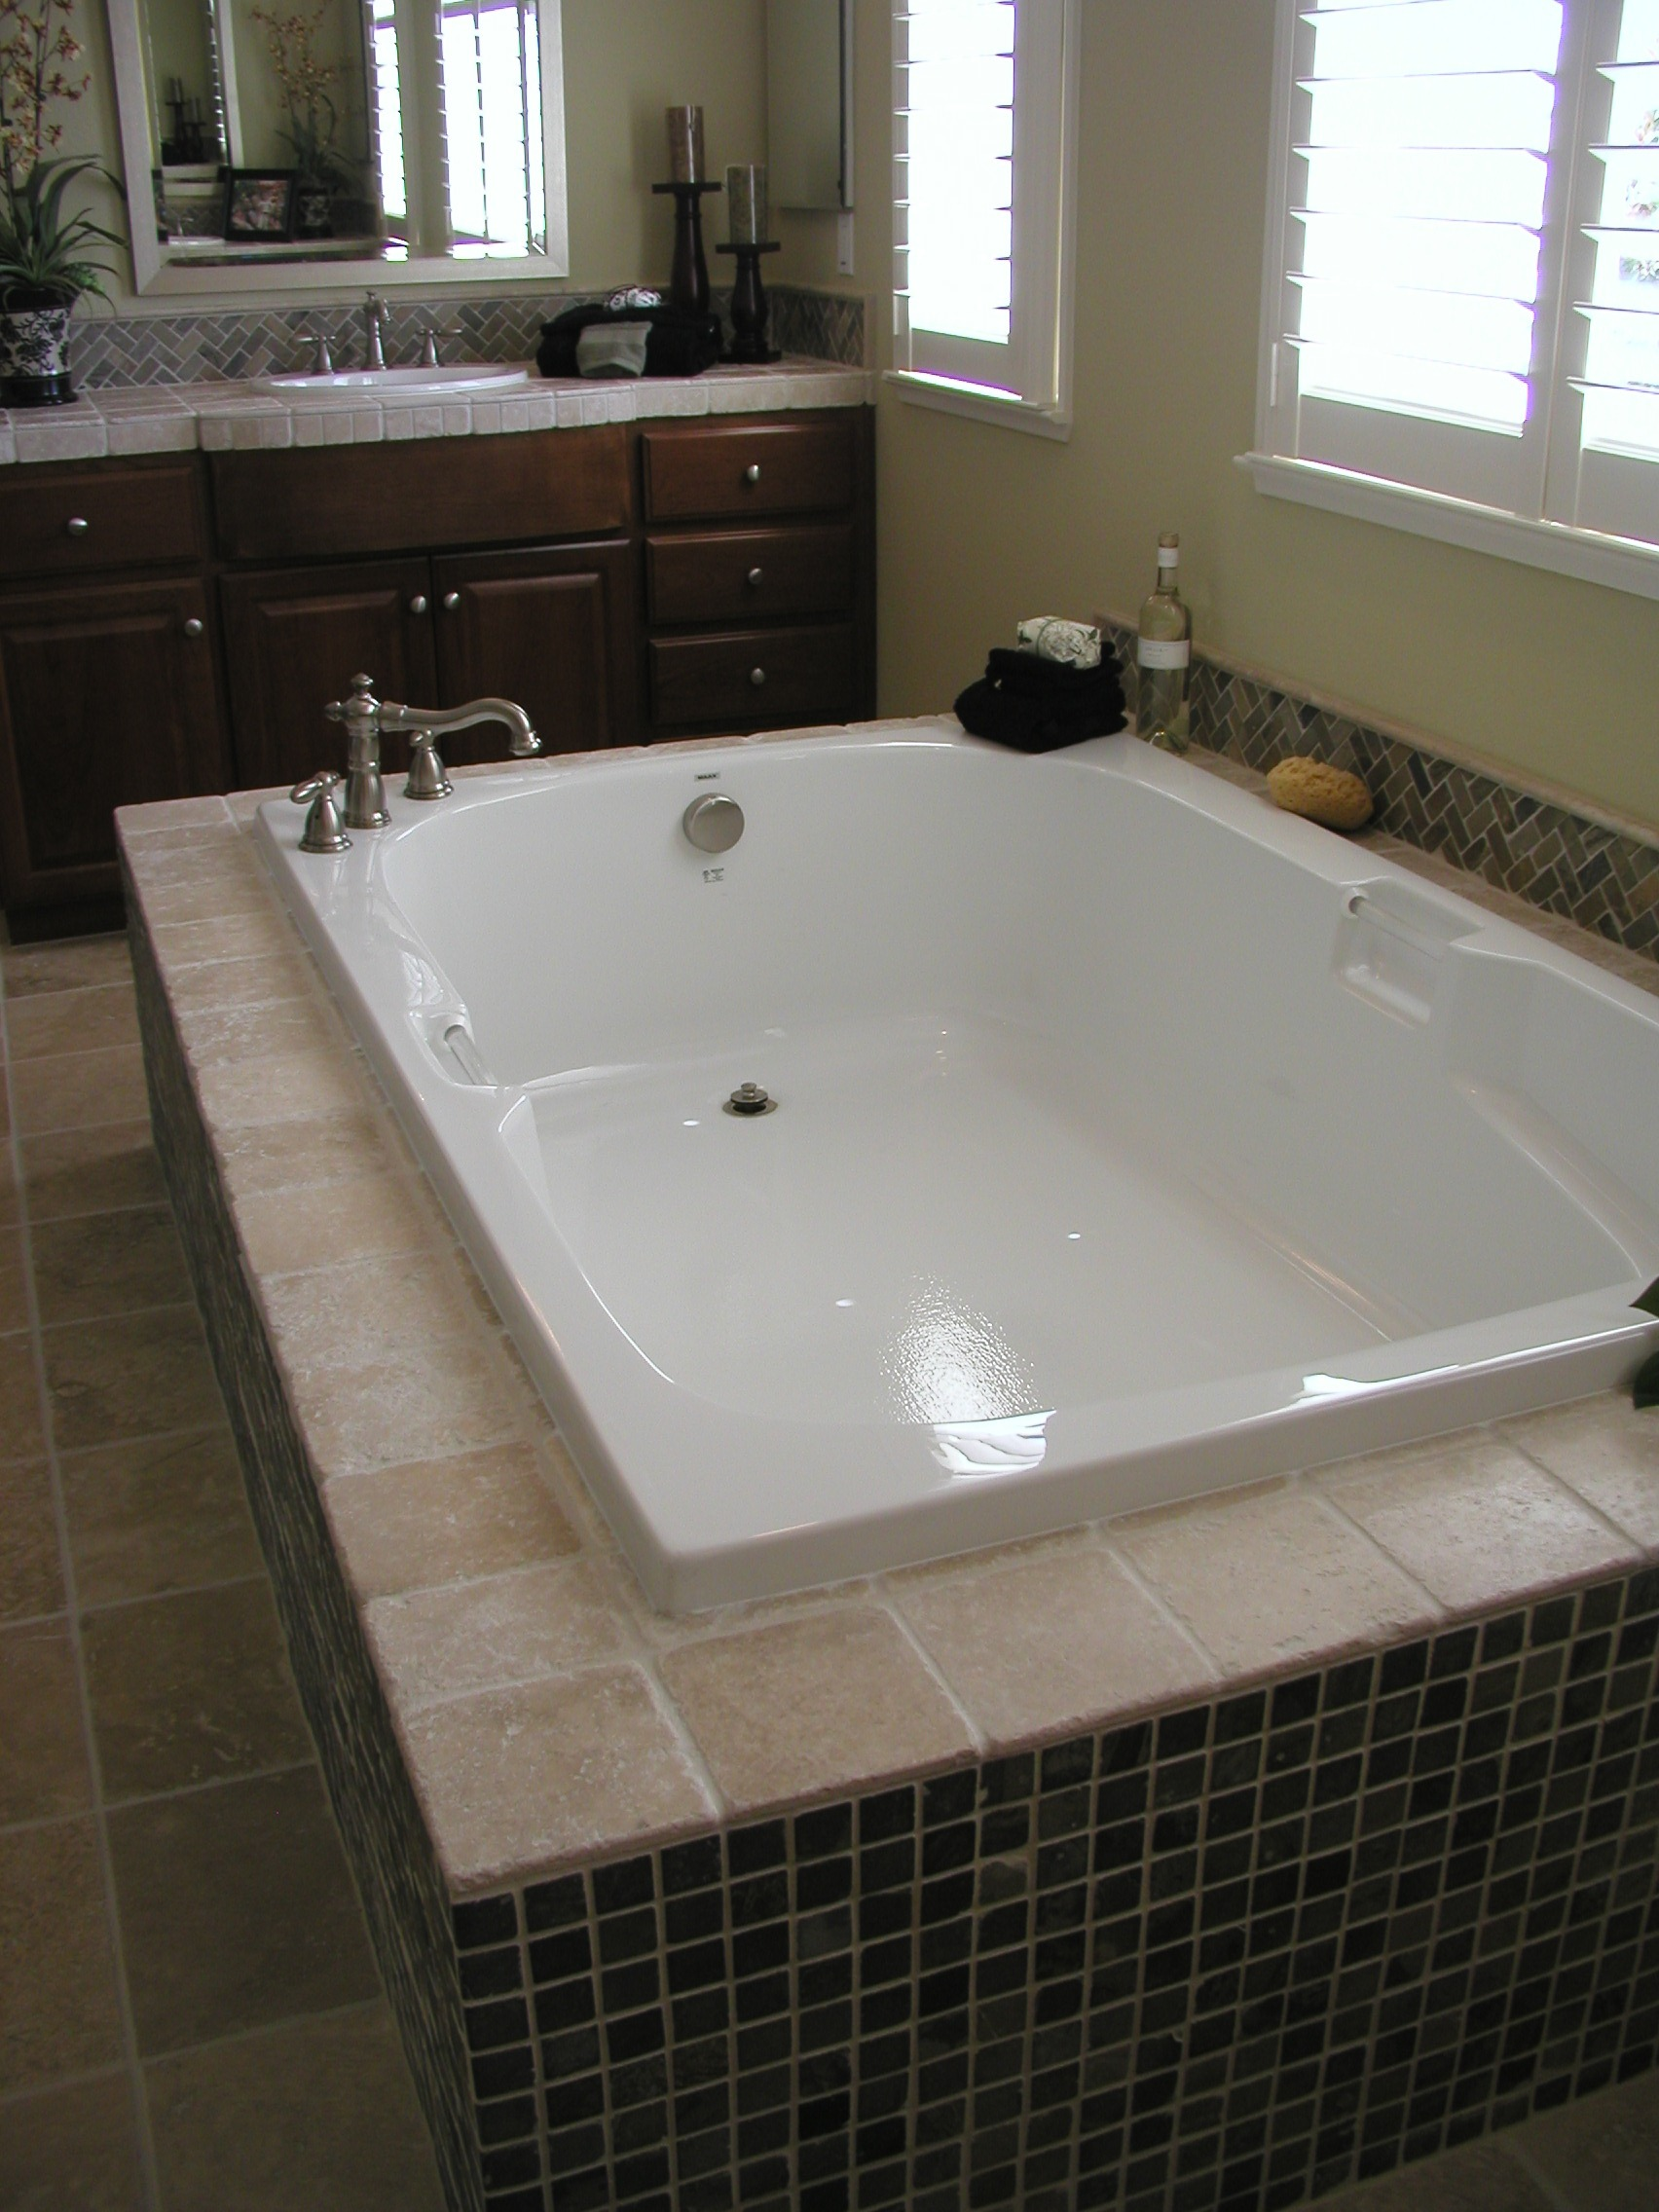 Do You Want Your Own Personal Spa Turn Your Bathroom Into One - How to remodel your own bathroom